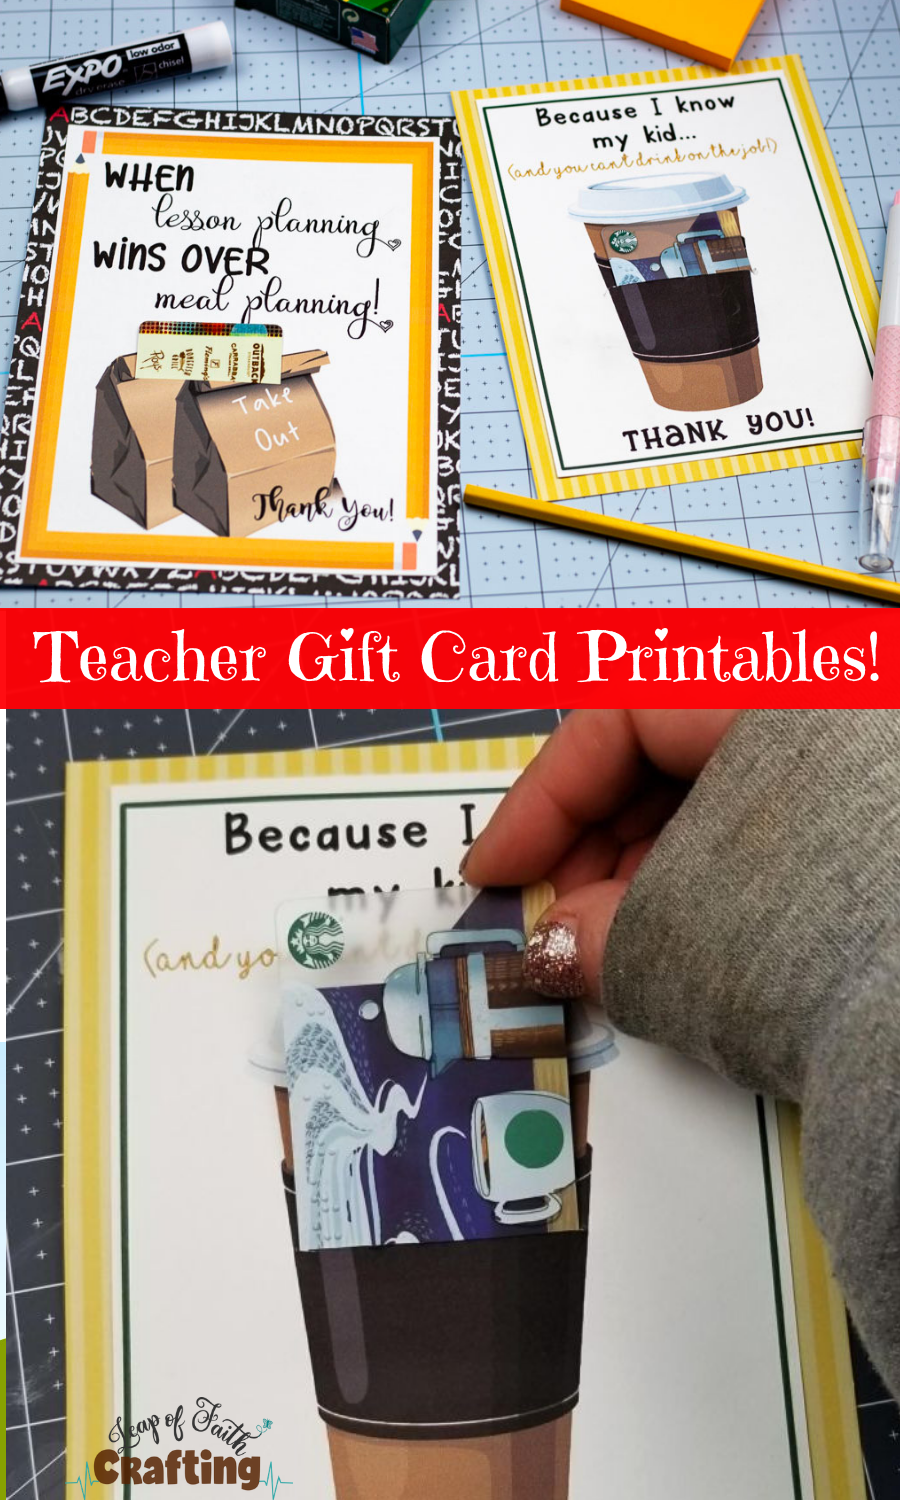 picture relating to Teacher Appreciation Cards Printable known as Printable Instructor Appreciation Playing cards: Simply Insert a Reward Card